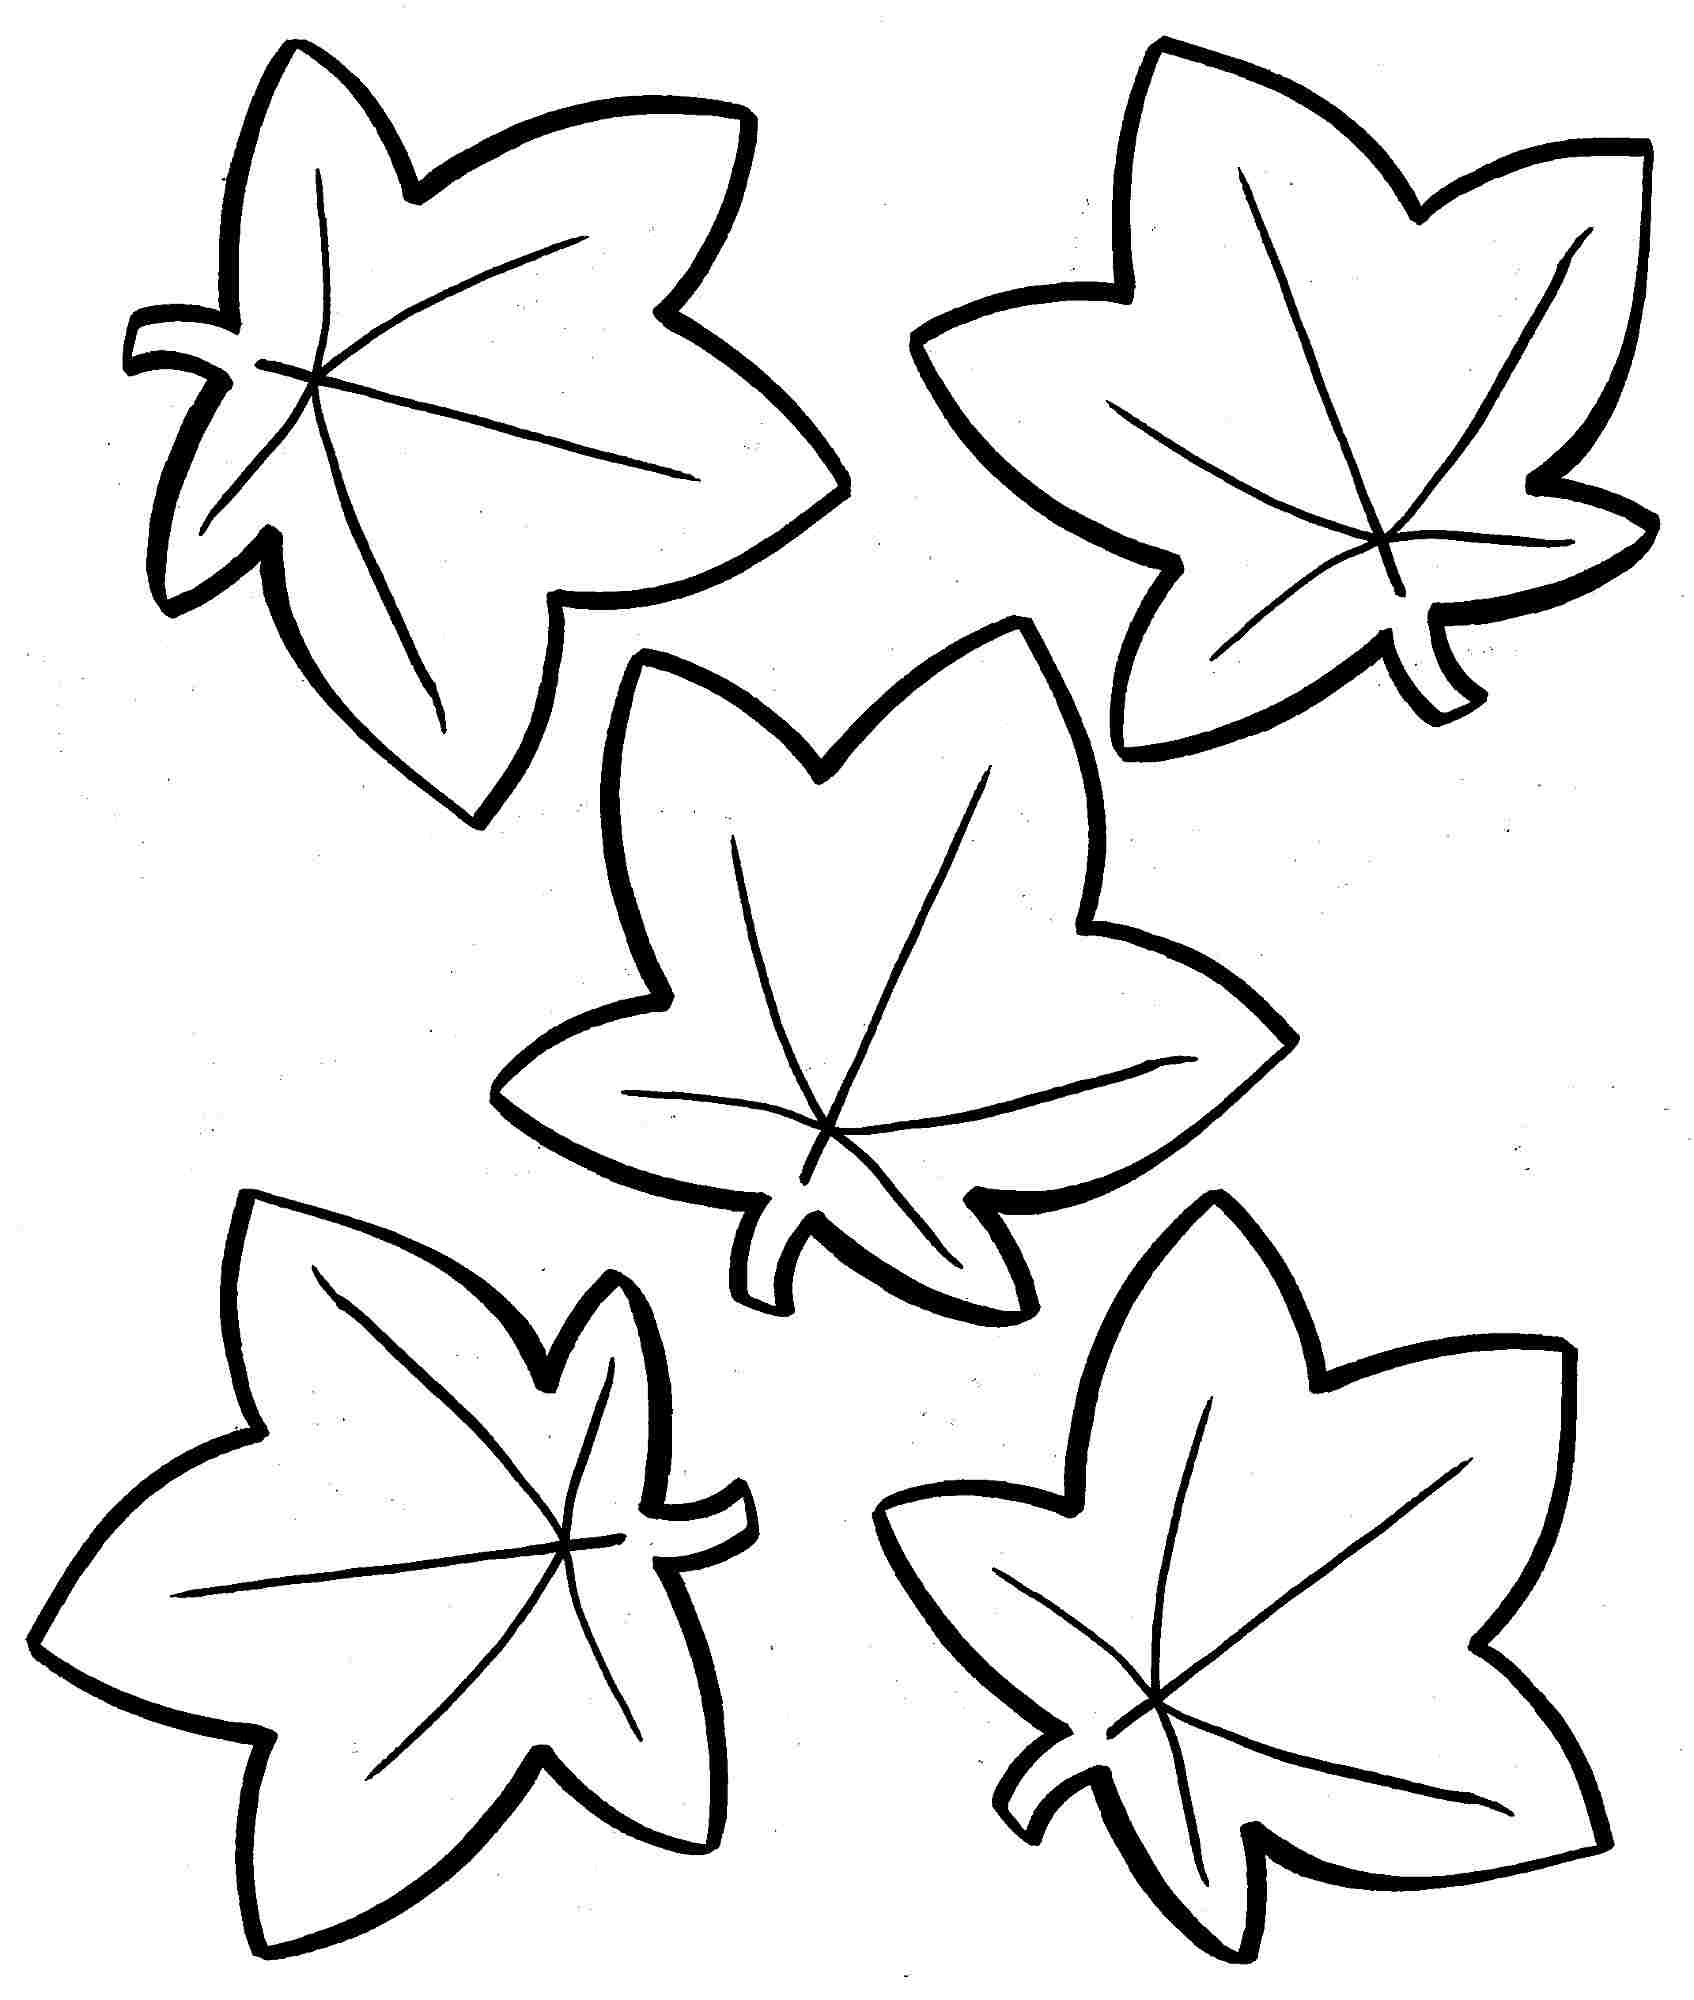 Coloring Pages Coloring Pages Fall Leaves autumn leaves coloring pages futpal com bestofcoloring